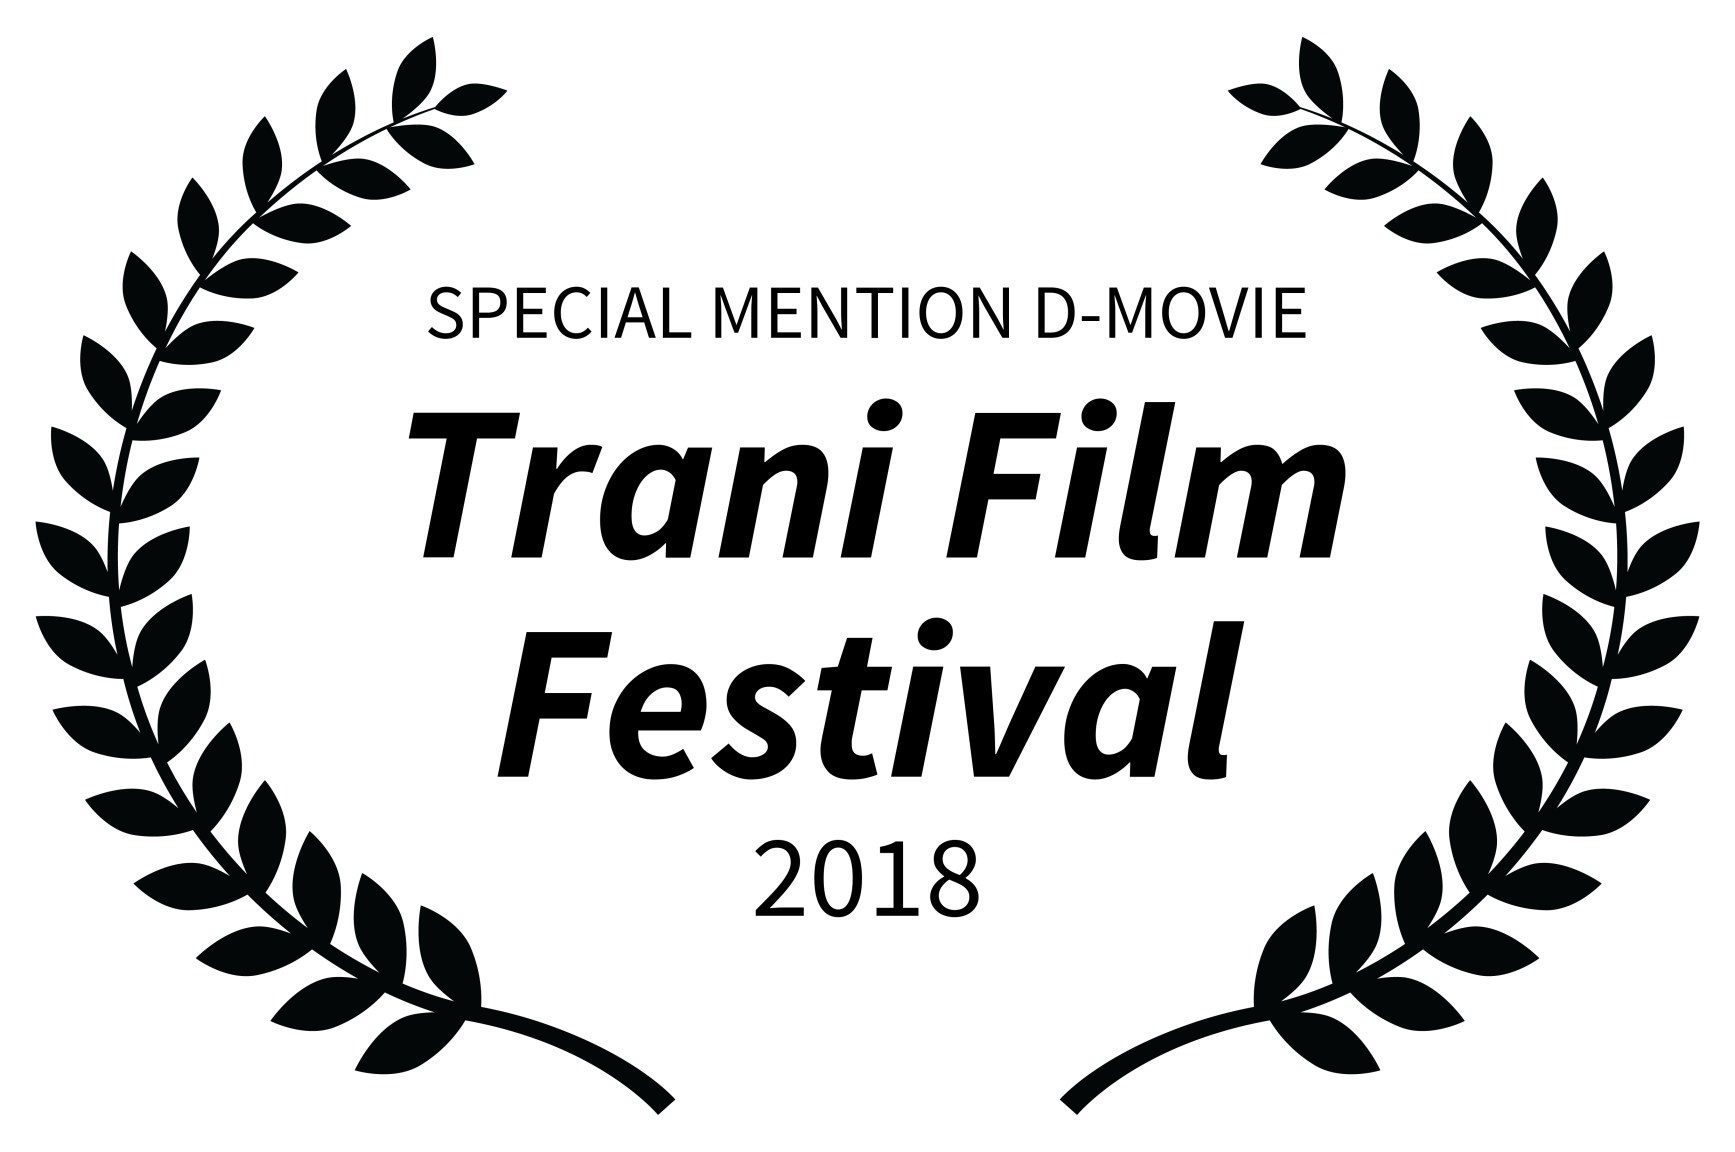 SPECIAL MENTION D-MOVIE - Trani Film Festival - 2018